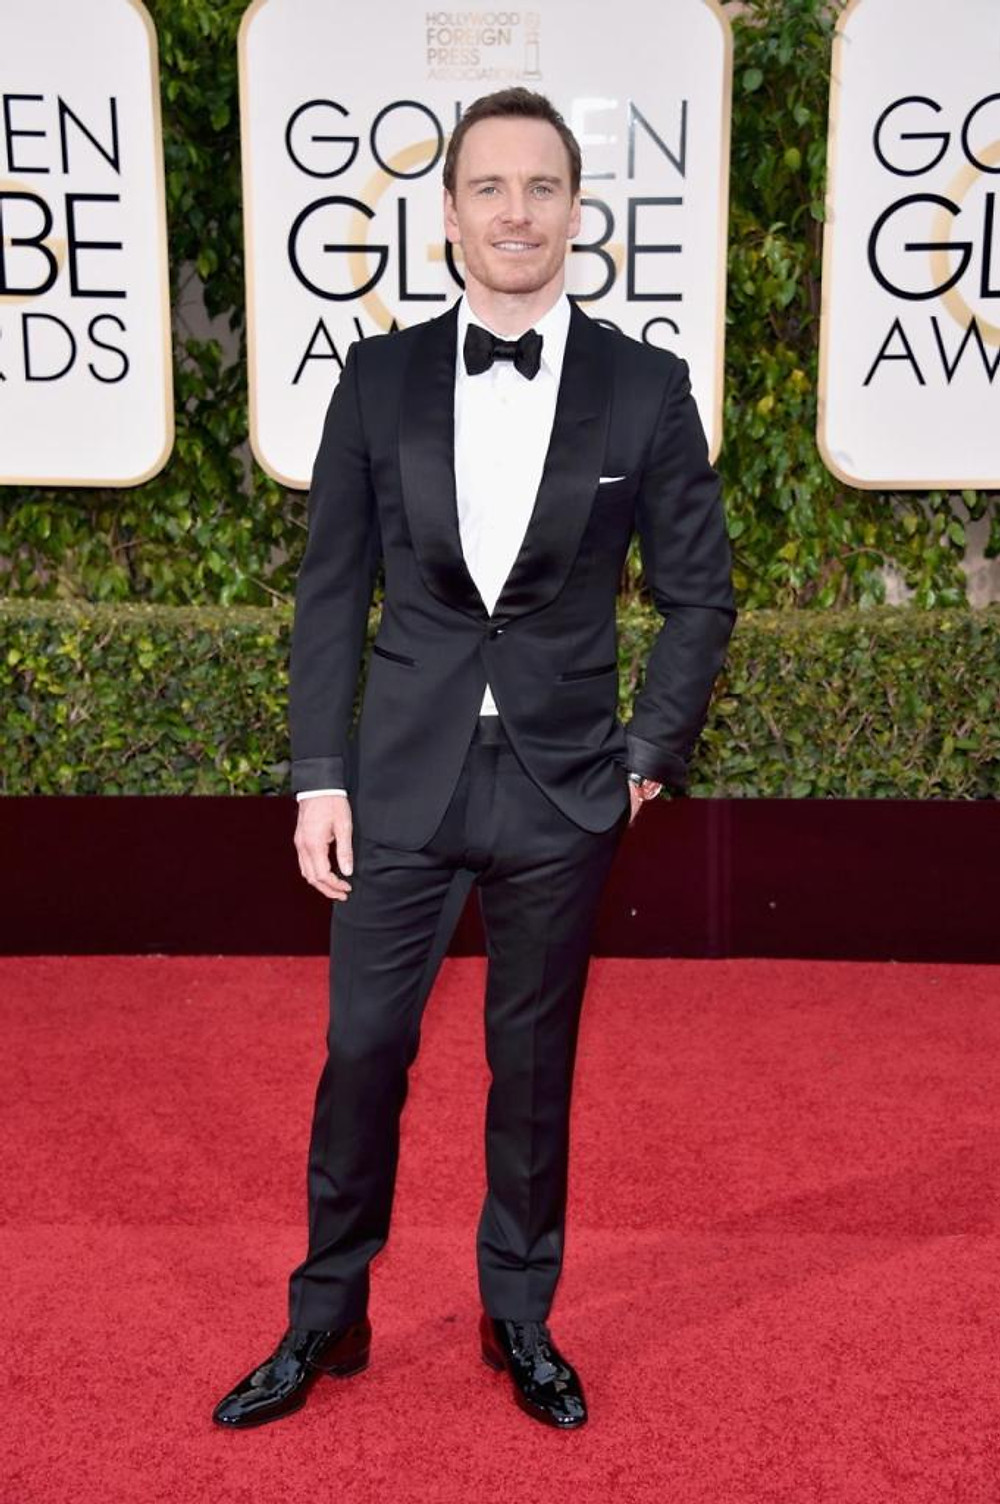 Actor Michael Fassbender attends the 73rd Annual Golden Globe Awards held at the Beverly Hilton Hotel on January 10, 2016 in Beverly Hills, California.